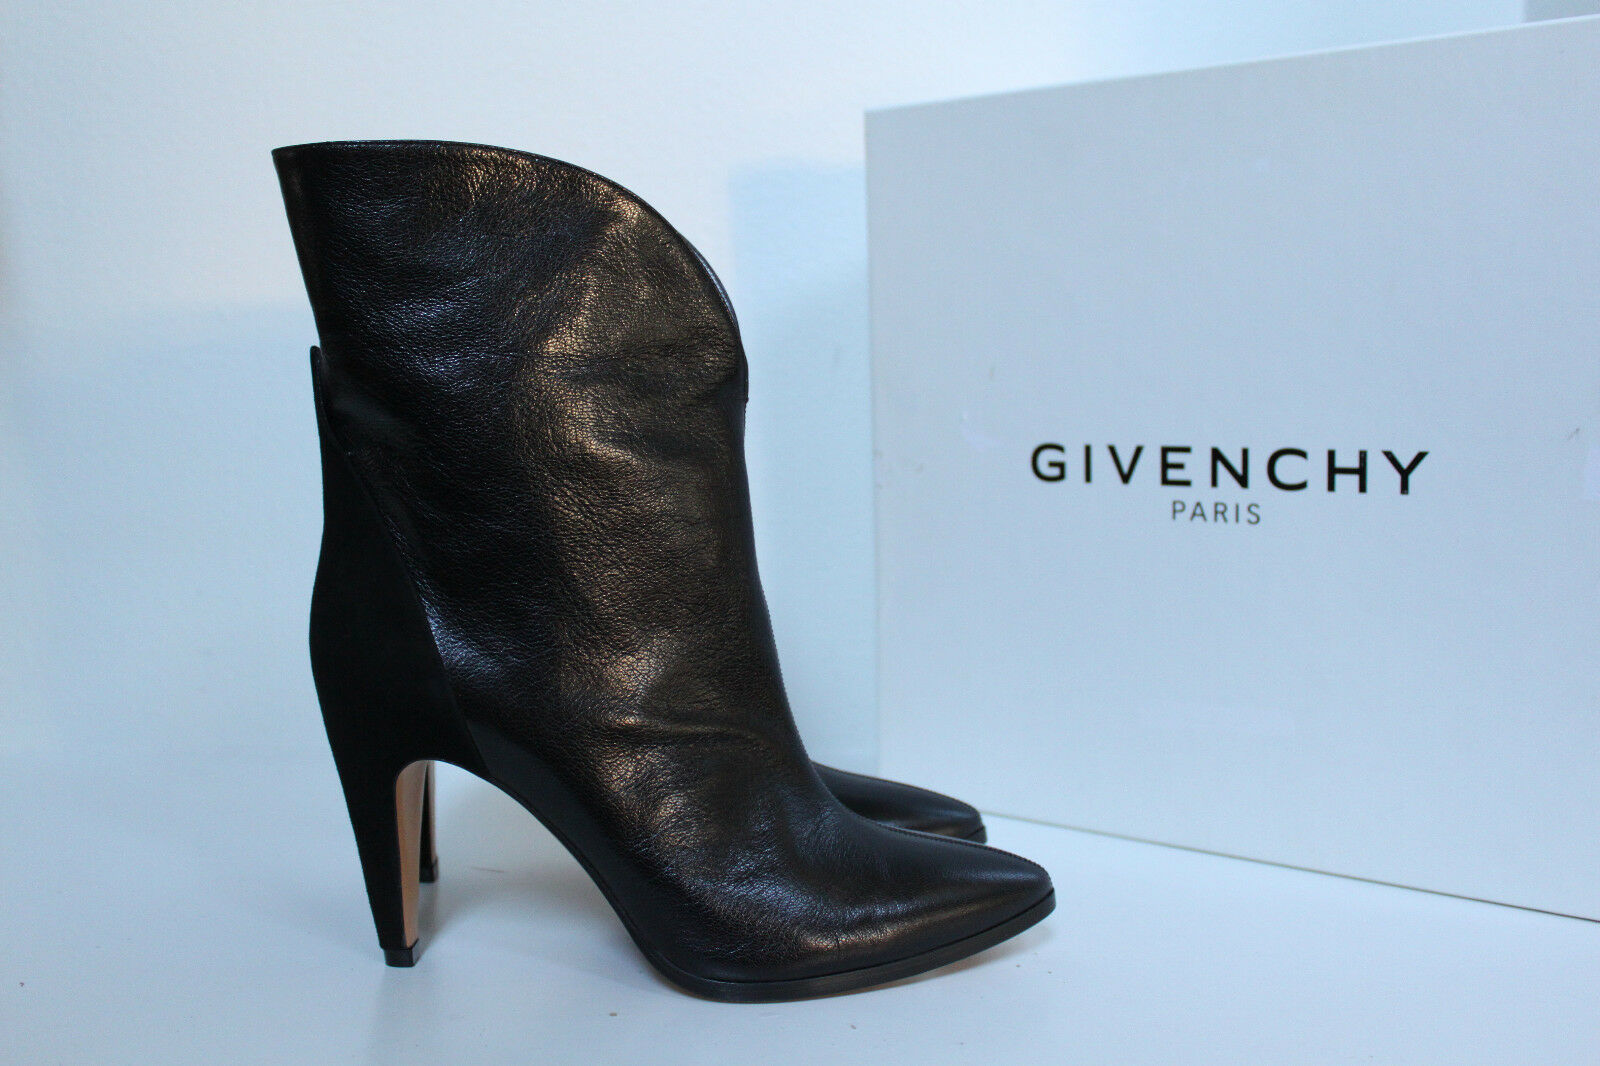 New sz 10.5     41 Givenchy Black Leather Pointed toe Suede Heel Pull on Boot shoes 336431